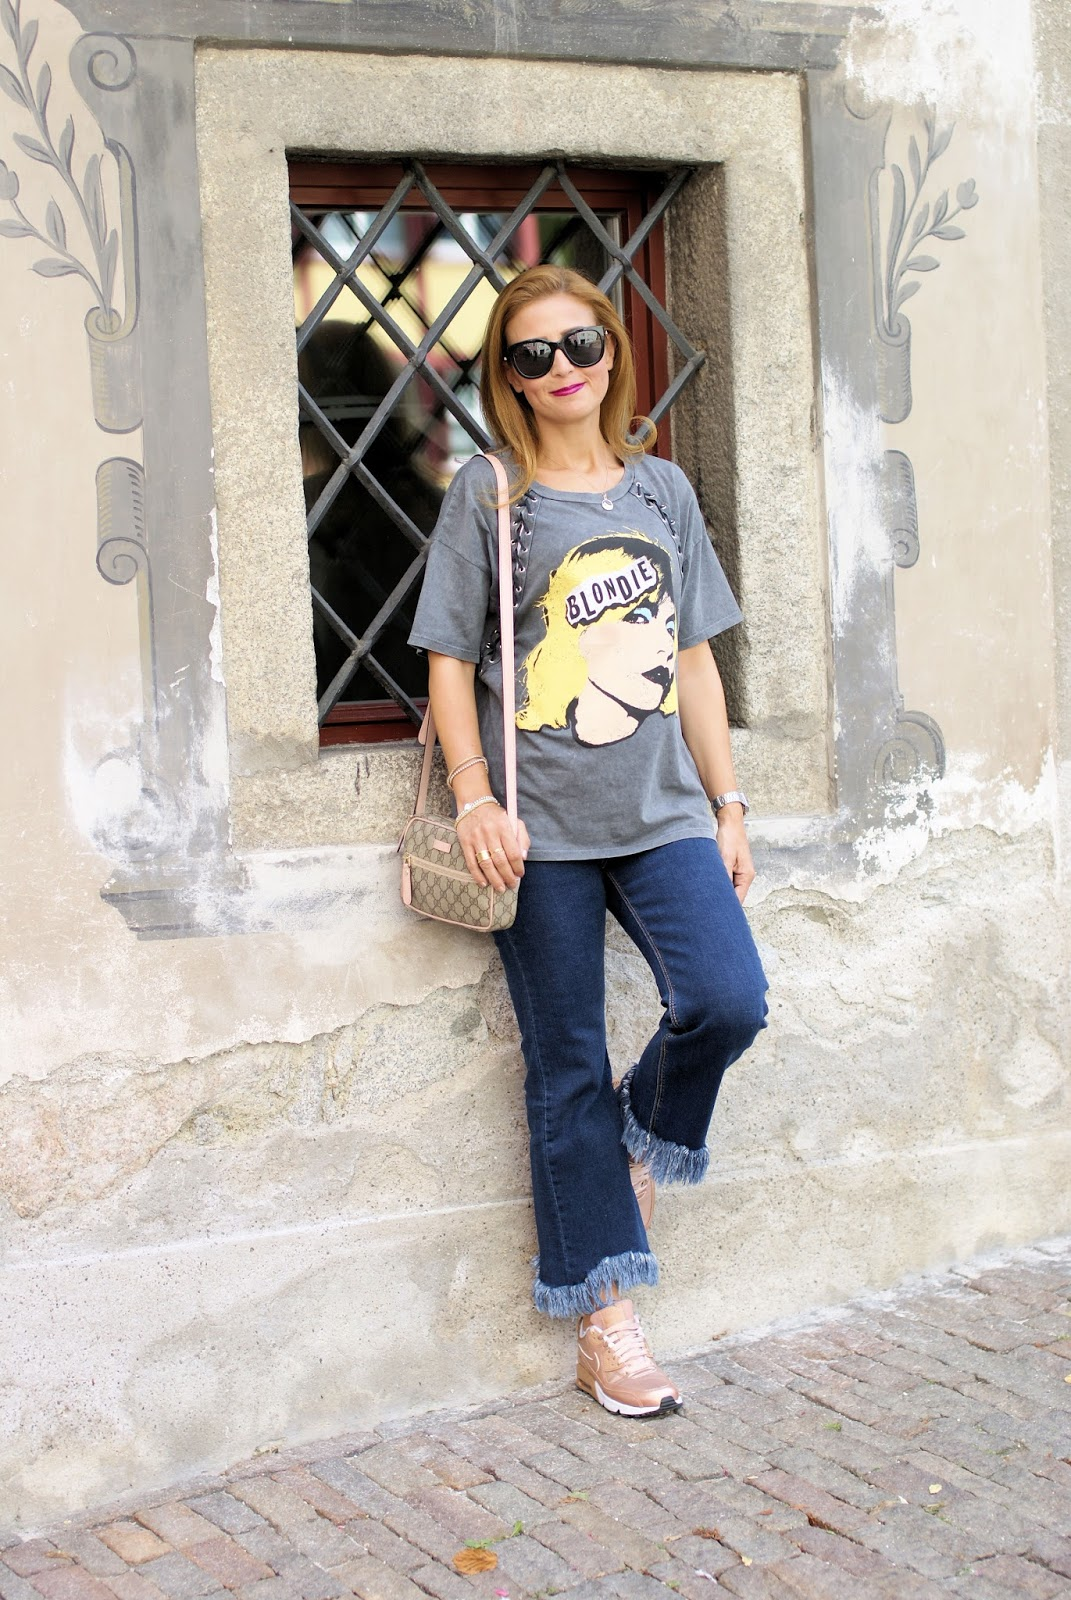 Casual street style: fashion blogger on holidays on Fashion and Cookies fashion blog, fashion blogger style